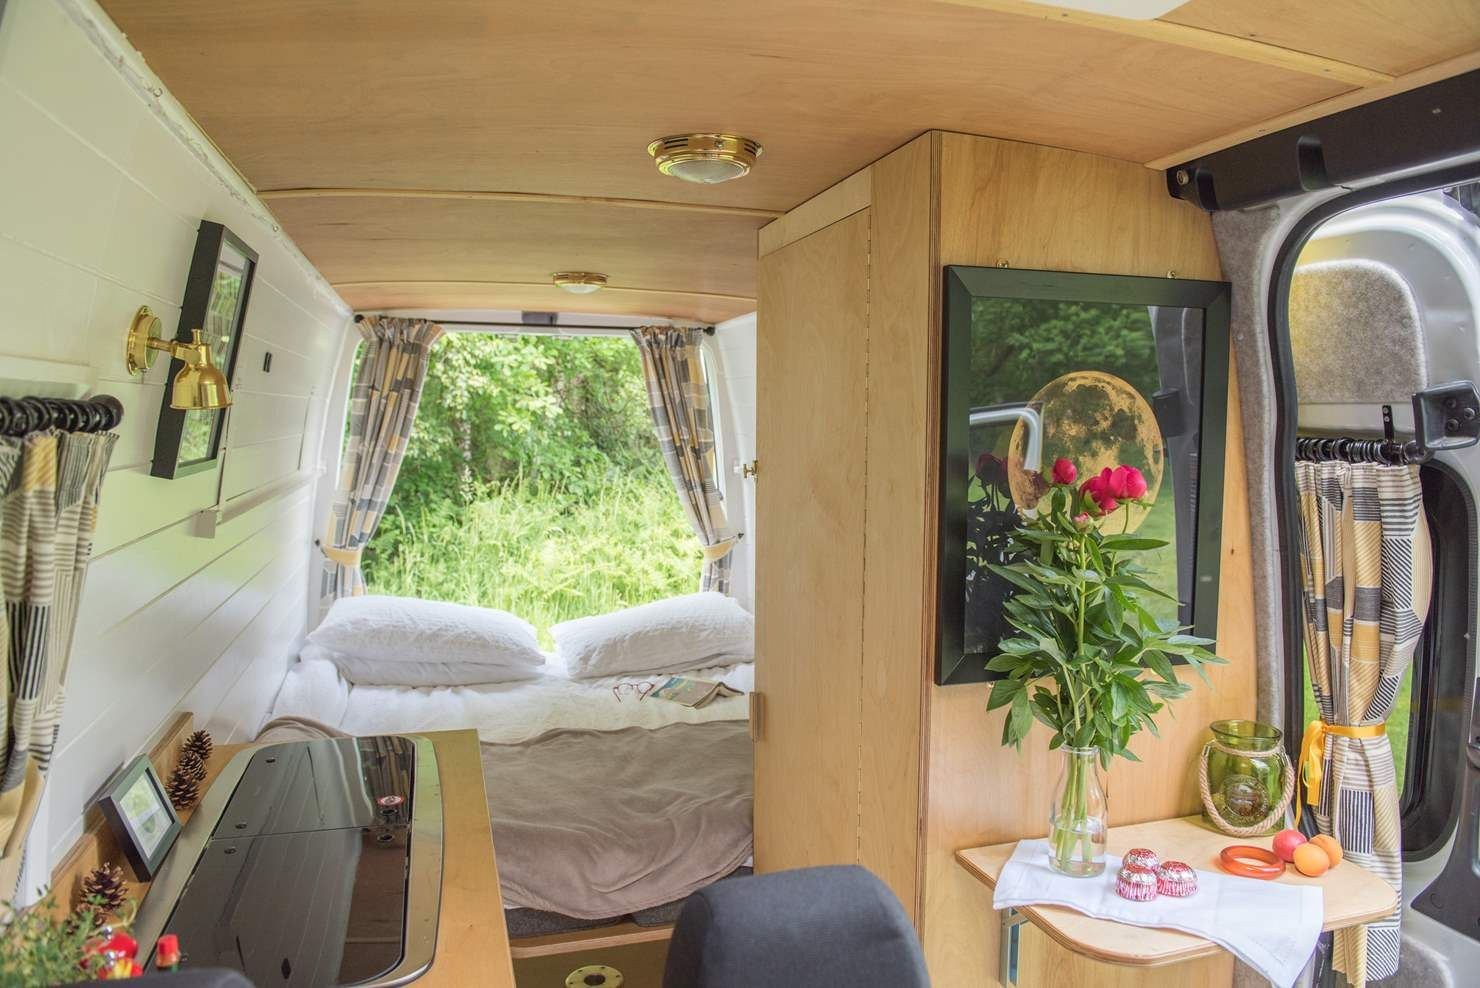 Campervan hire Doncaster Book Mo your Quirky Camper today